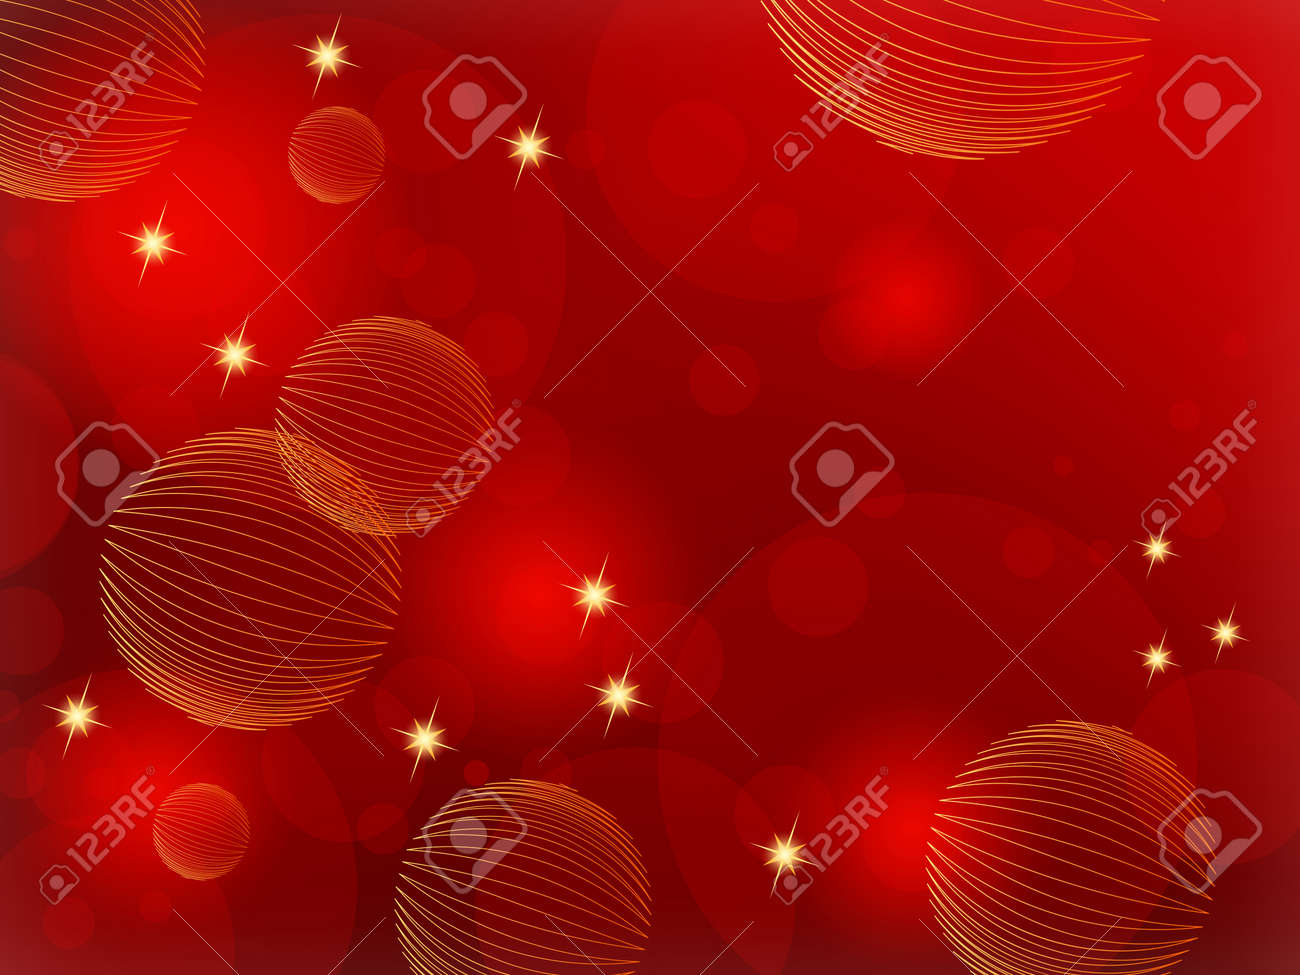 Red Christmas background abstract - 15577809